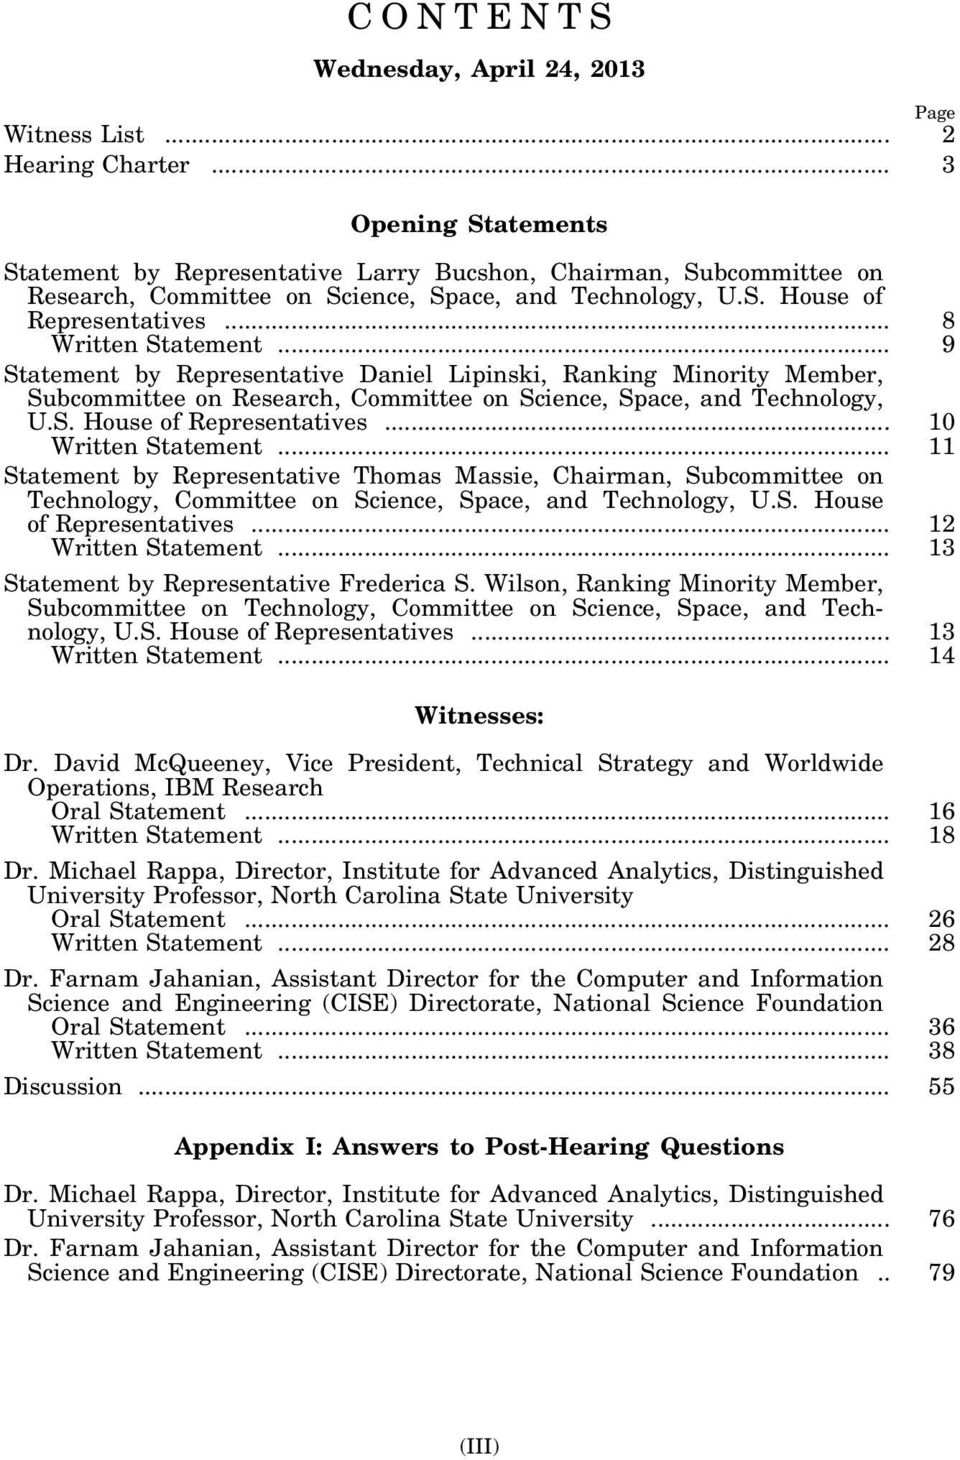 .. 9 Statement by Representative Daniel Lipinski, Ranking Minority Member, Subcommittee on Research, Committee on Science, Space, and Technology, U.S. House of Representatives... 10 Written Statement.